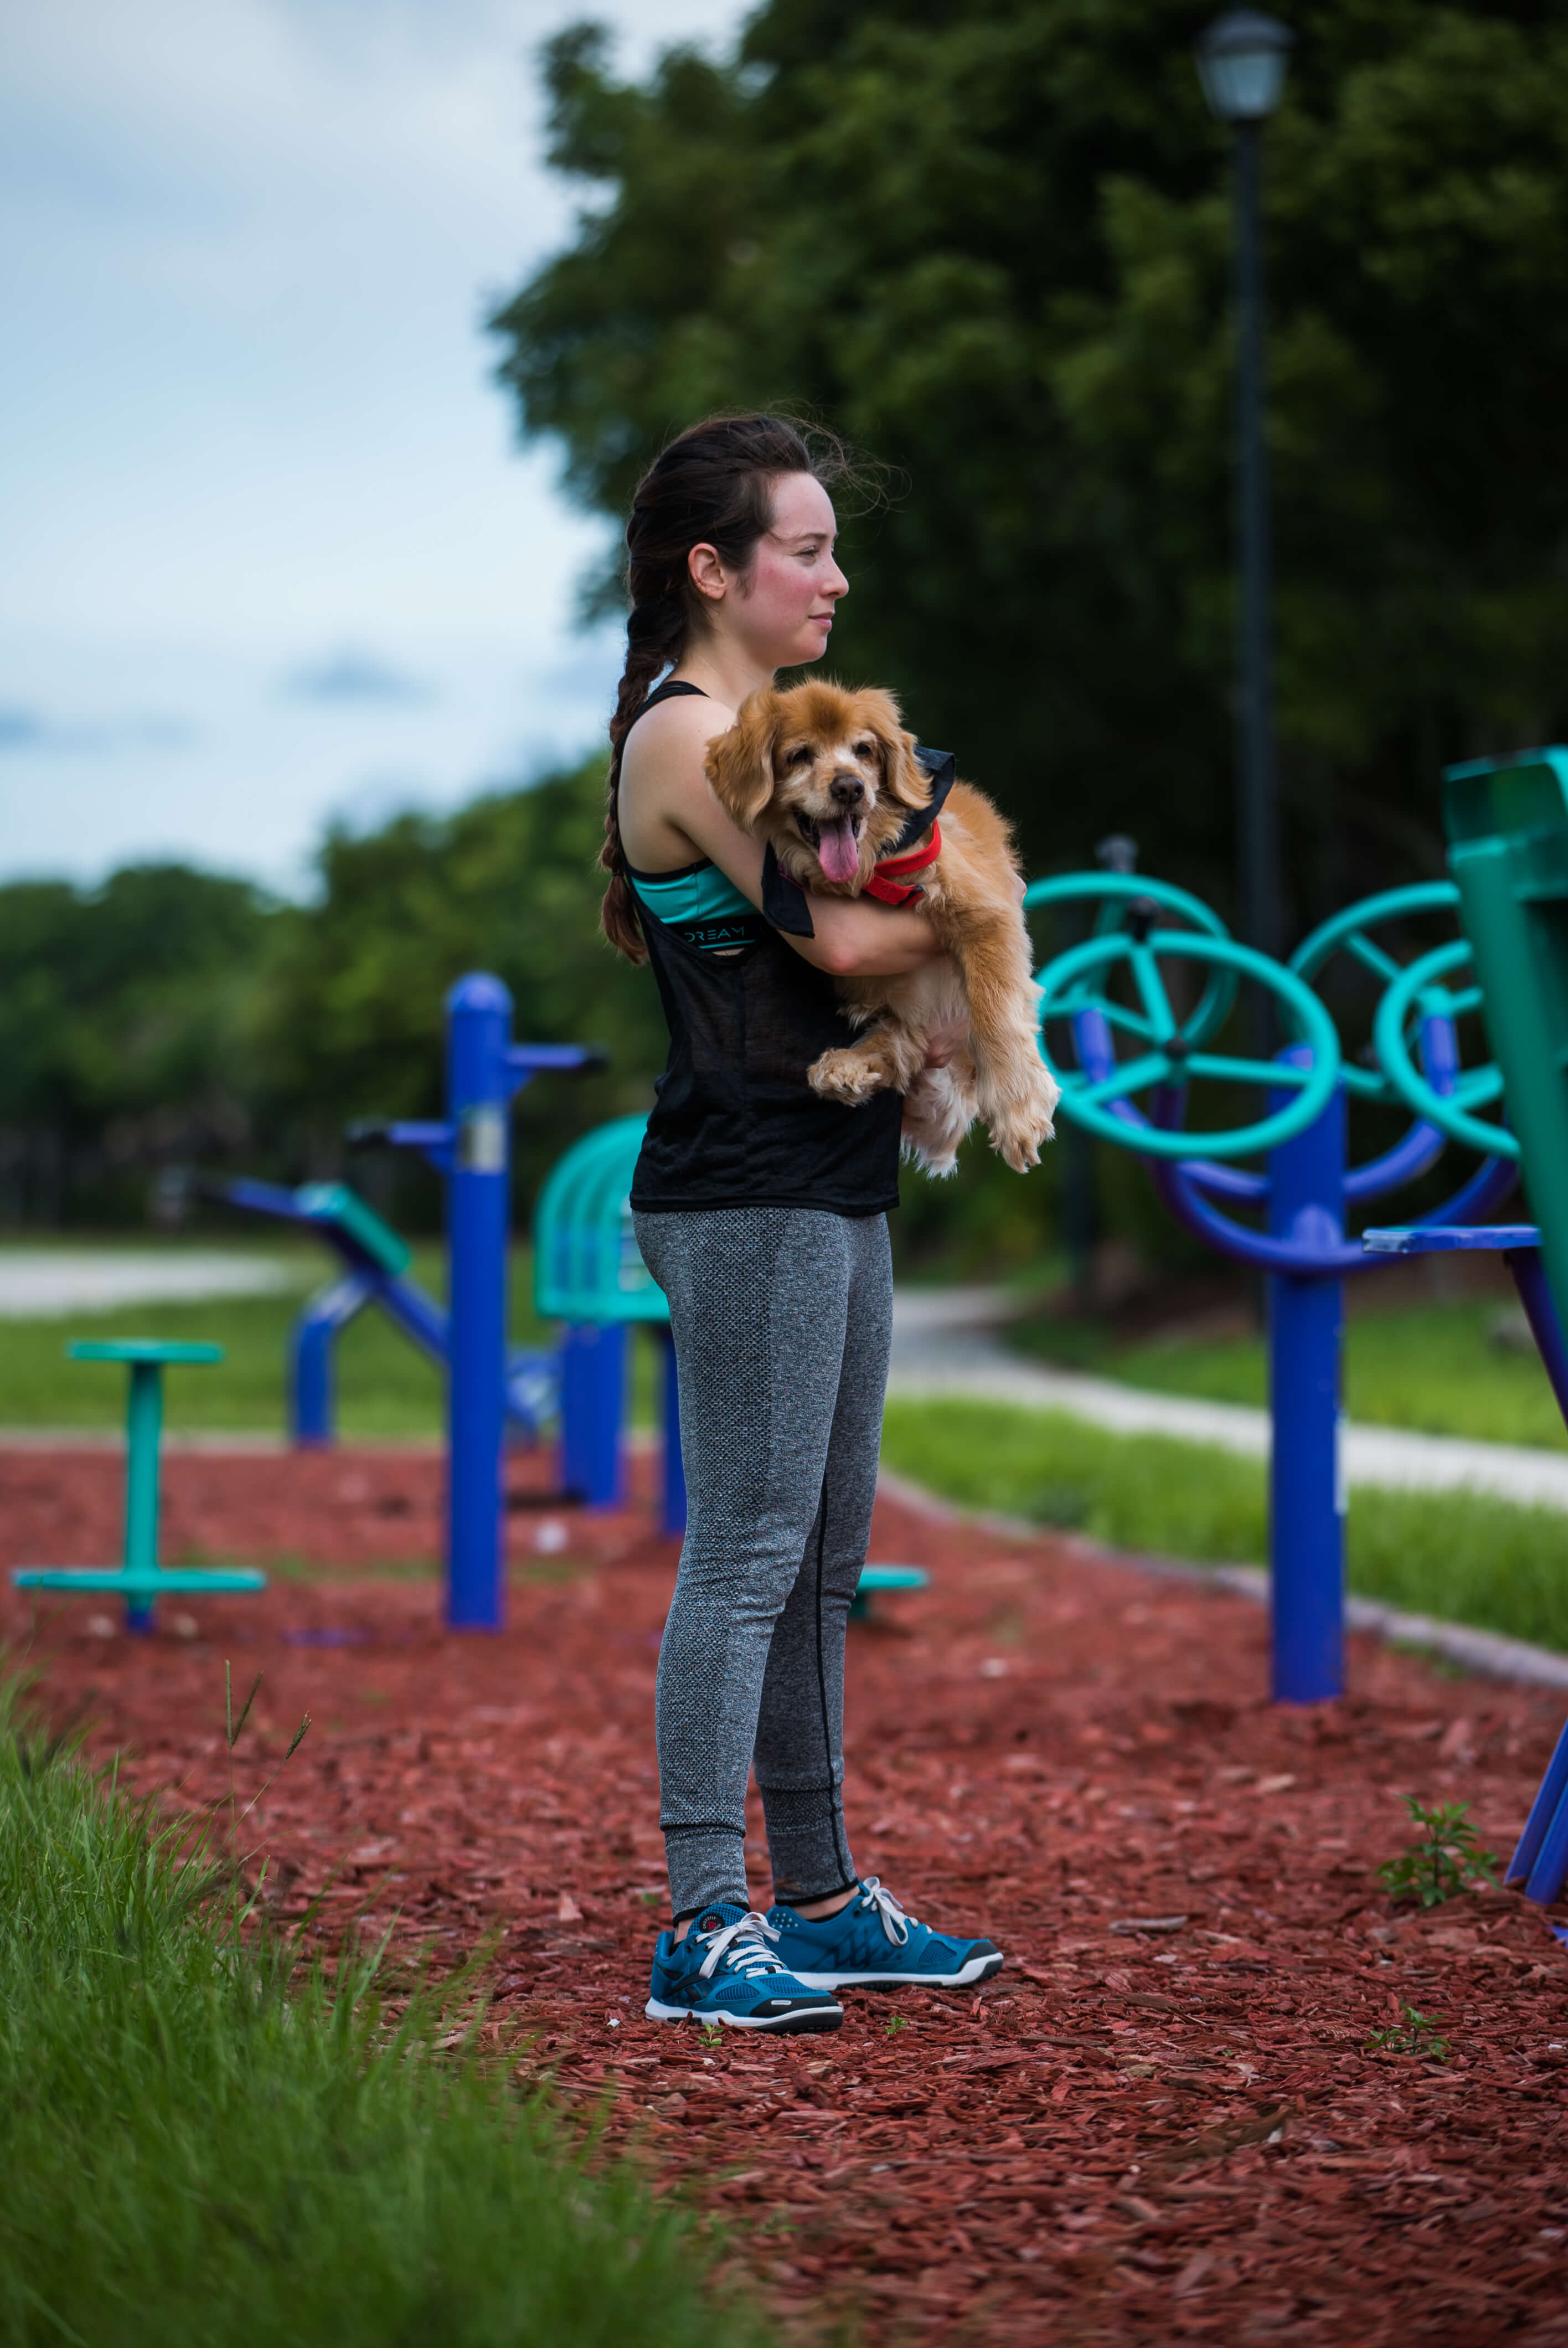 squats with dog pet workout exercises younfolded blog